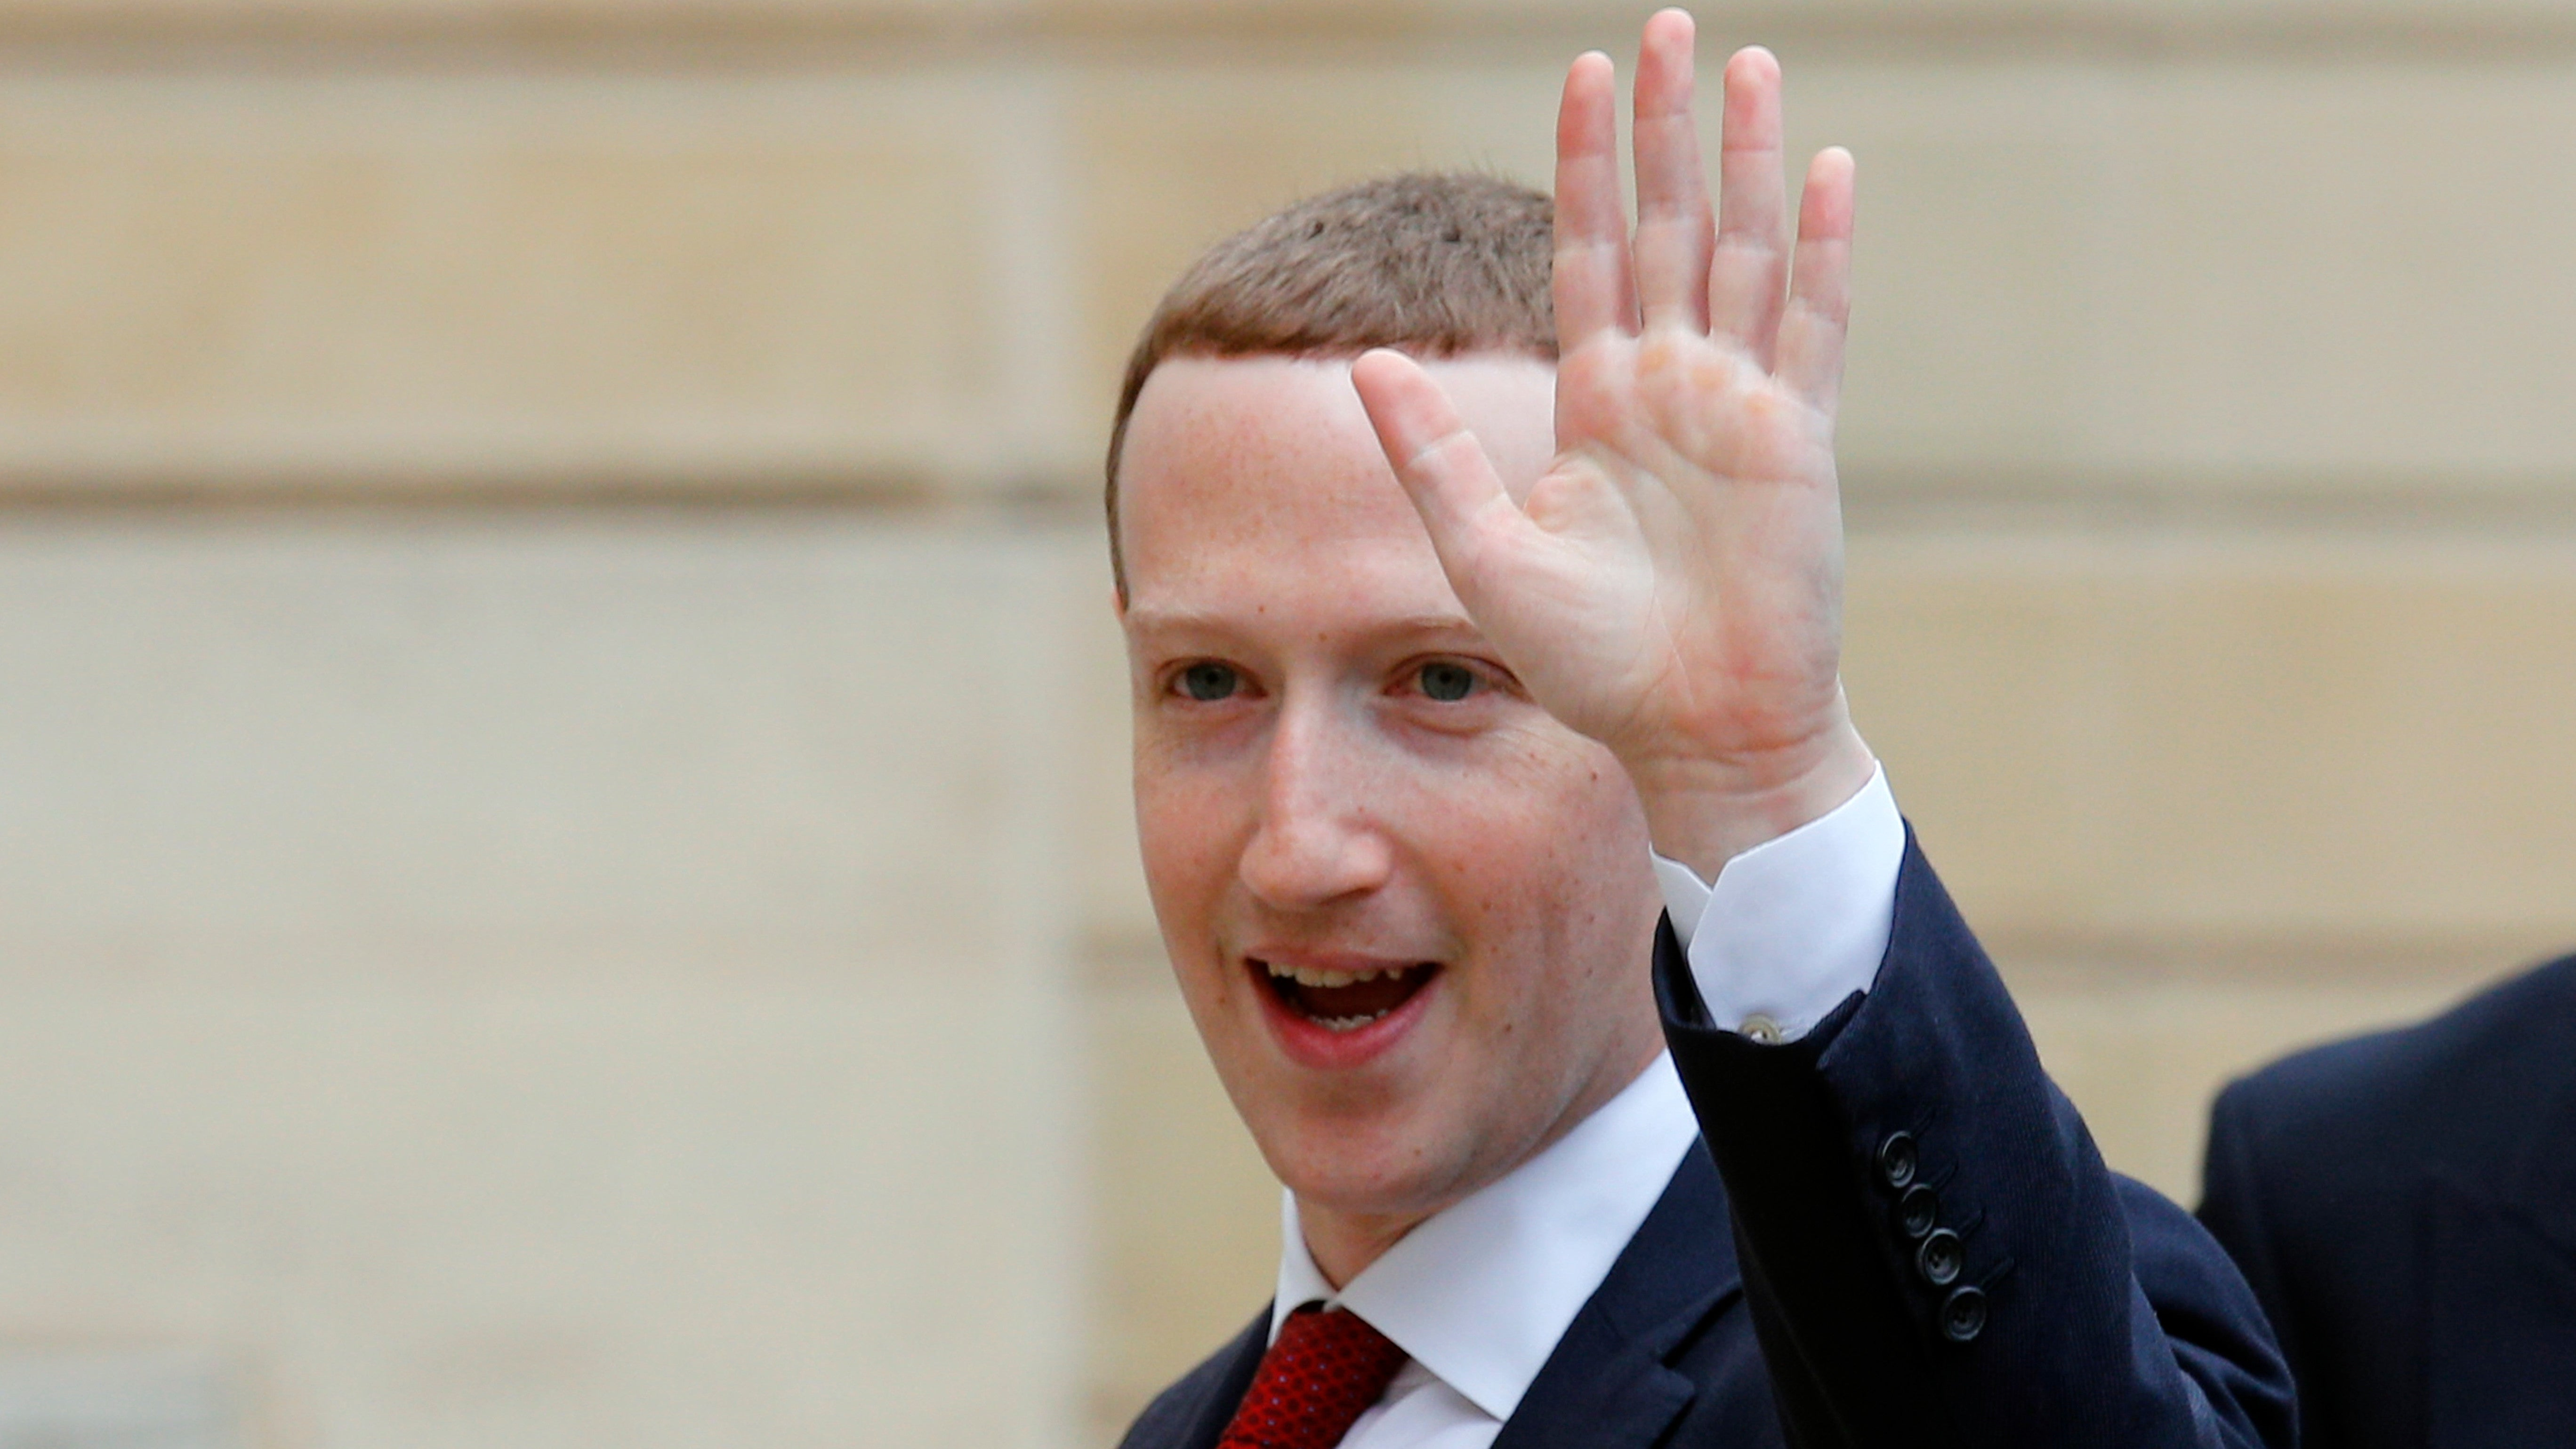 Facebook Worried About Mark Zuckerberg's Old Emails In FTC Privacy Probe